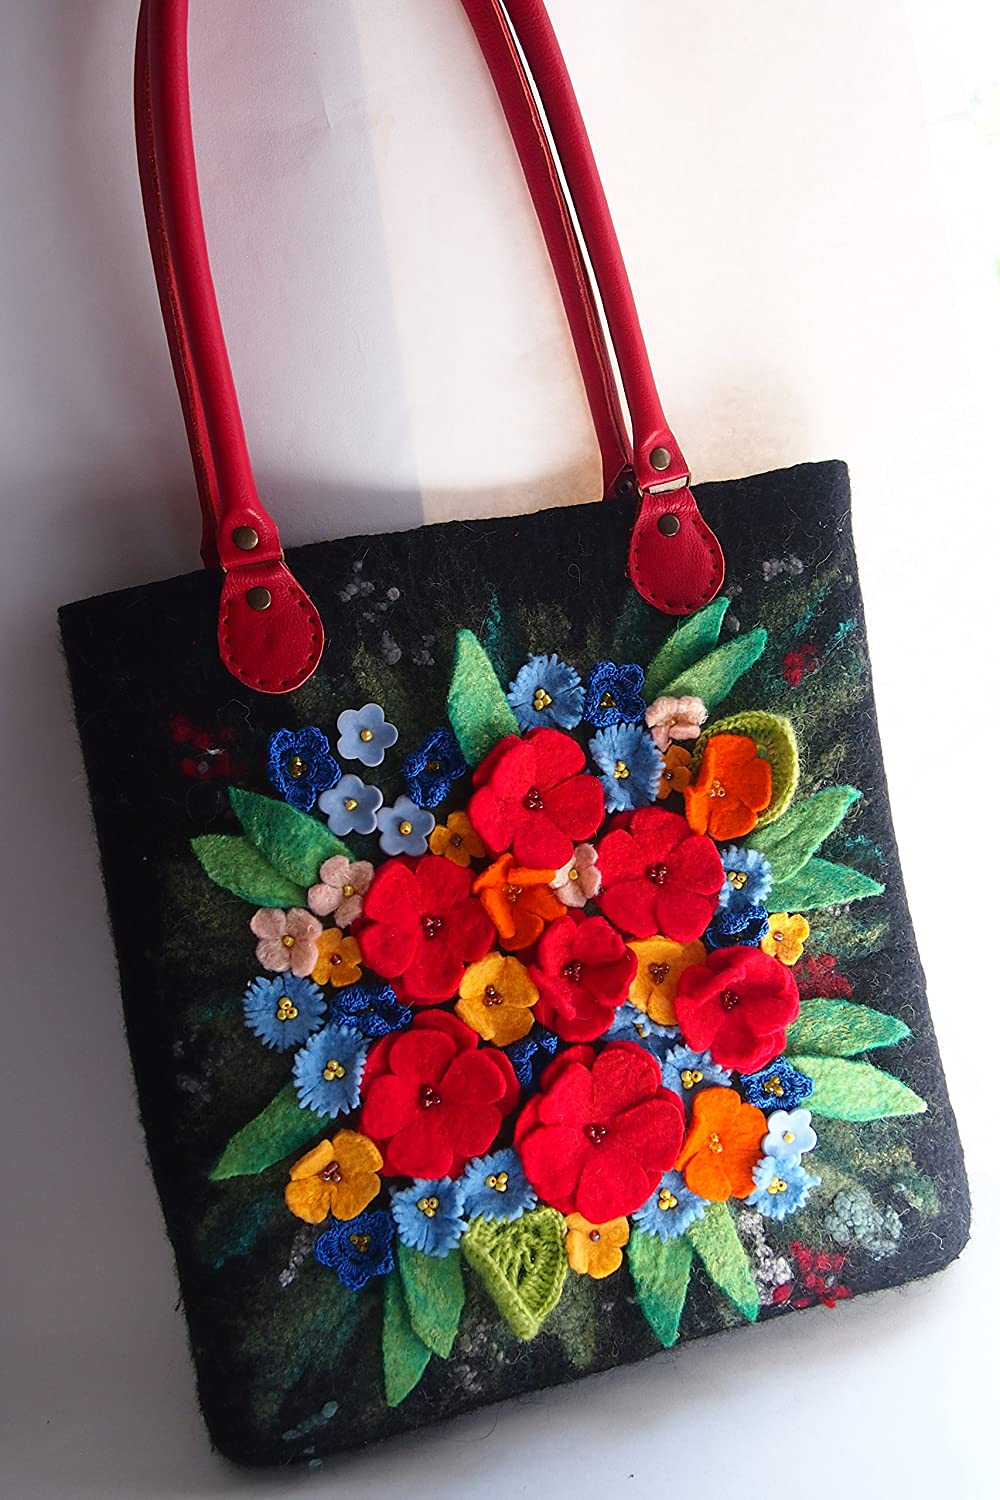 0b52114f1 Amazon.com: Felted floral tote bag for women, Floral handbag, Floral  shoulder bag, Flower handbag, Floral tote handbag, Floral bag, Floral purse,ready  to ...